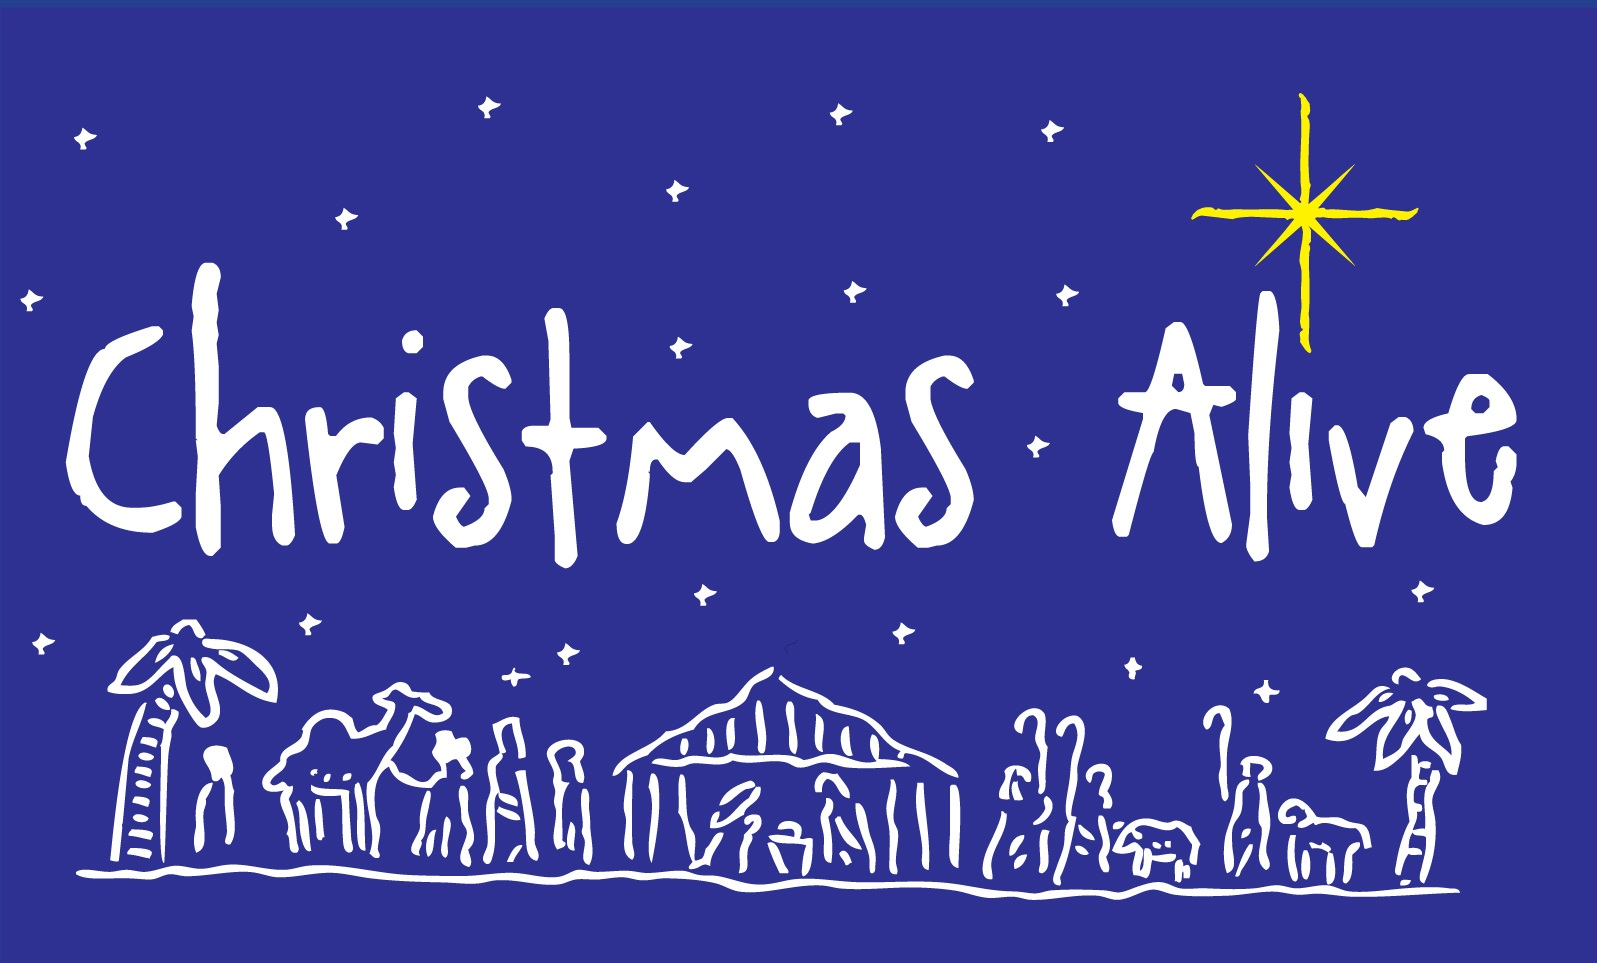 Christmas Alive & Backyard Party - West University United Methodist Church's annual live nativity called Christmas Alive will be held at 6pm on Sunday, December 8, 2019 on the front lawn of the church. Raindate: December 15, 2019.Following the performance, a community-wide Christmas Party will be held on the back of our property. A petting zoo with camel rides, children's crafts, hot wassail, desserts, and a photo booth will all be featured.If you would like to help with Christmas Alive, please contact our Director of Music Ministries, Lynne Jackson.